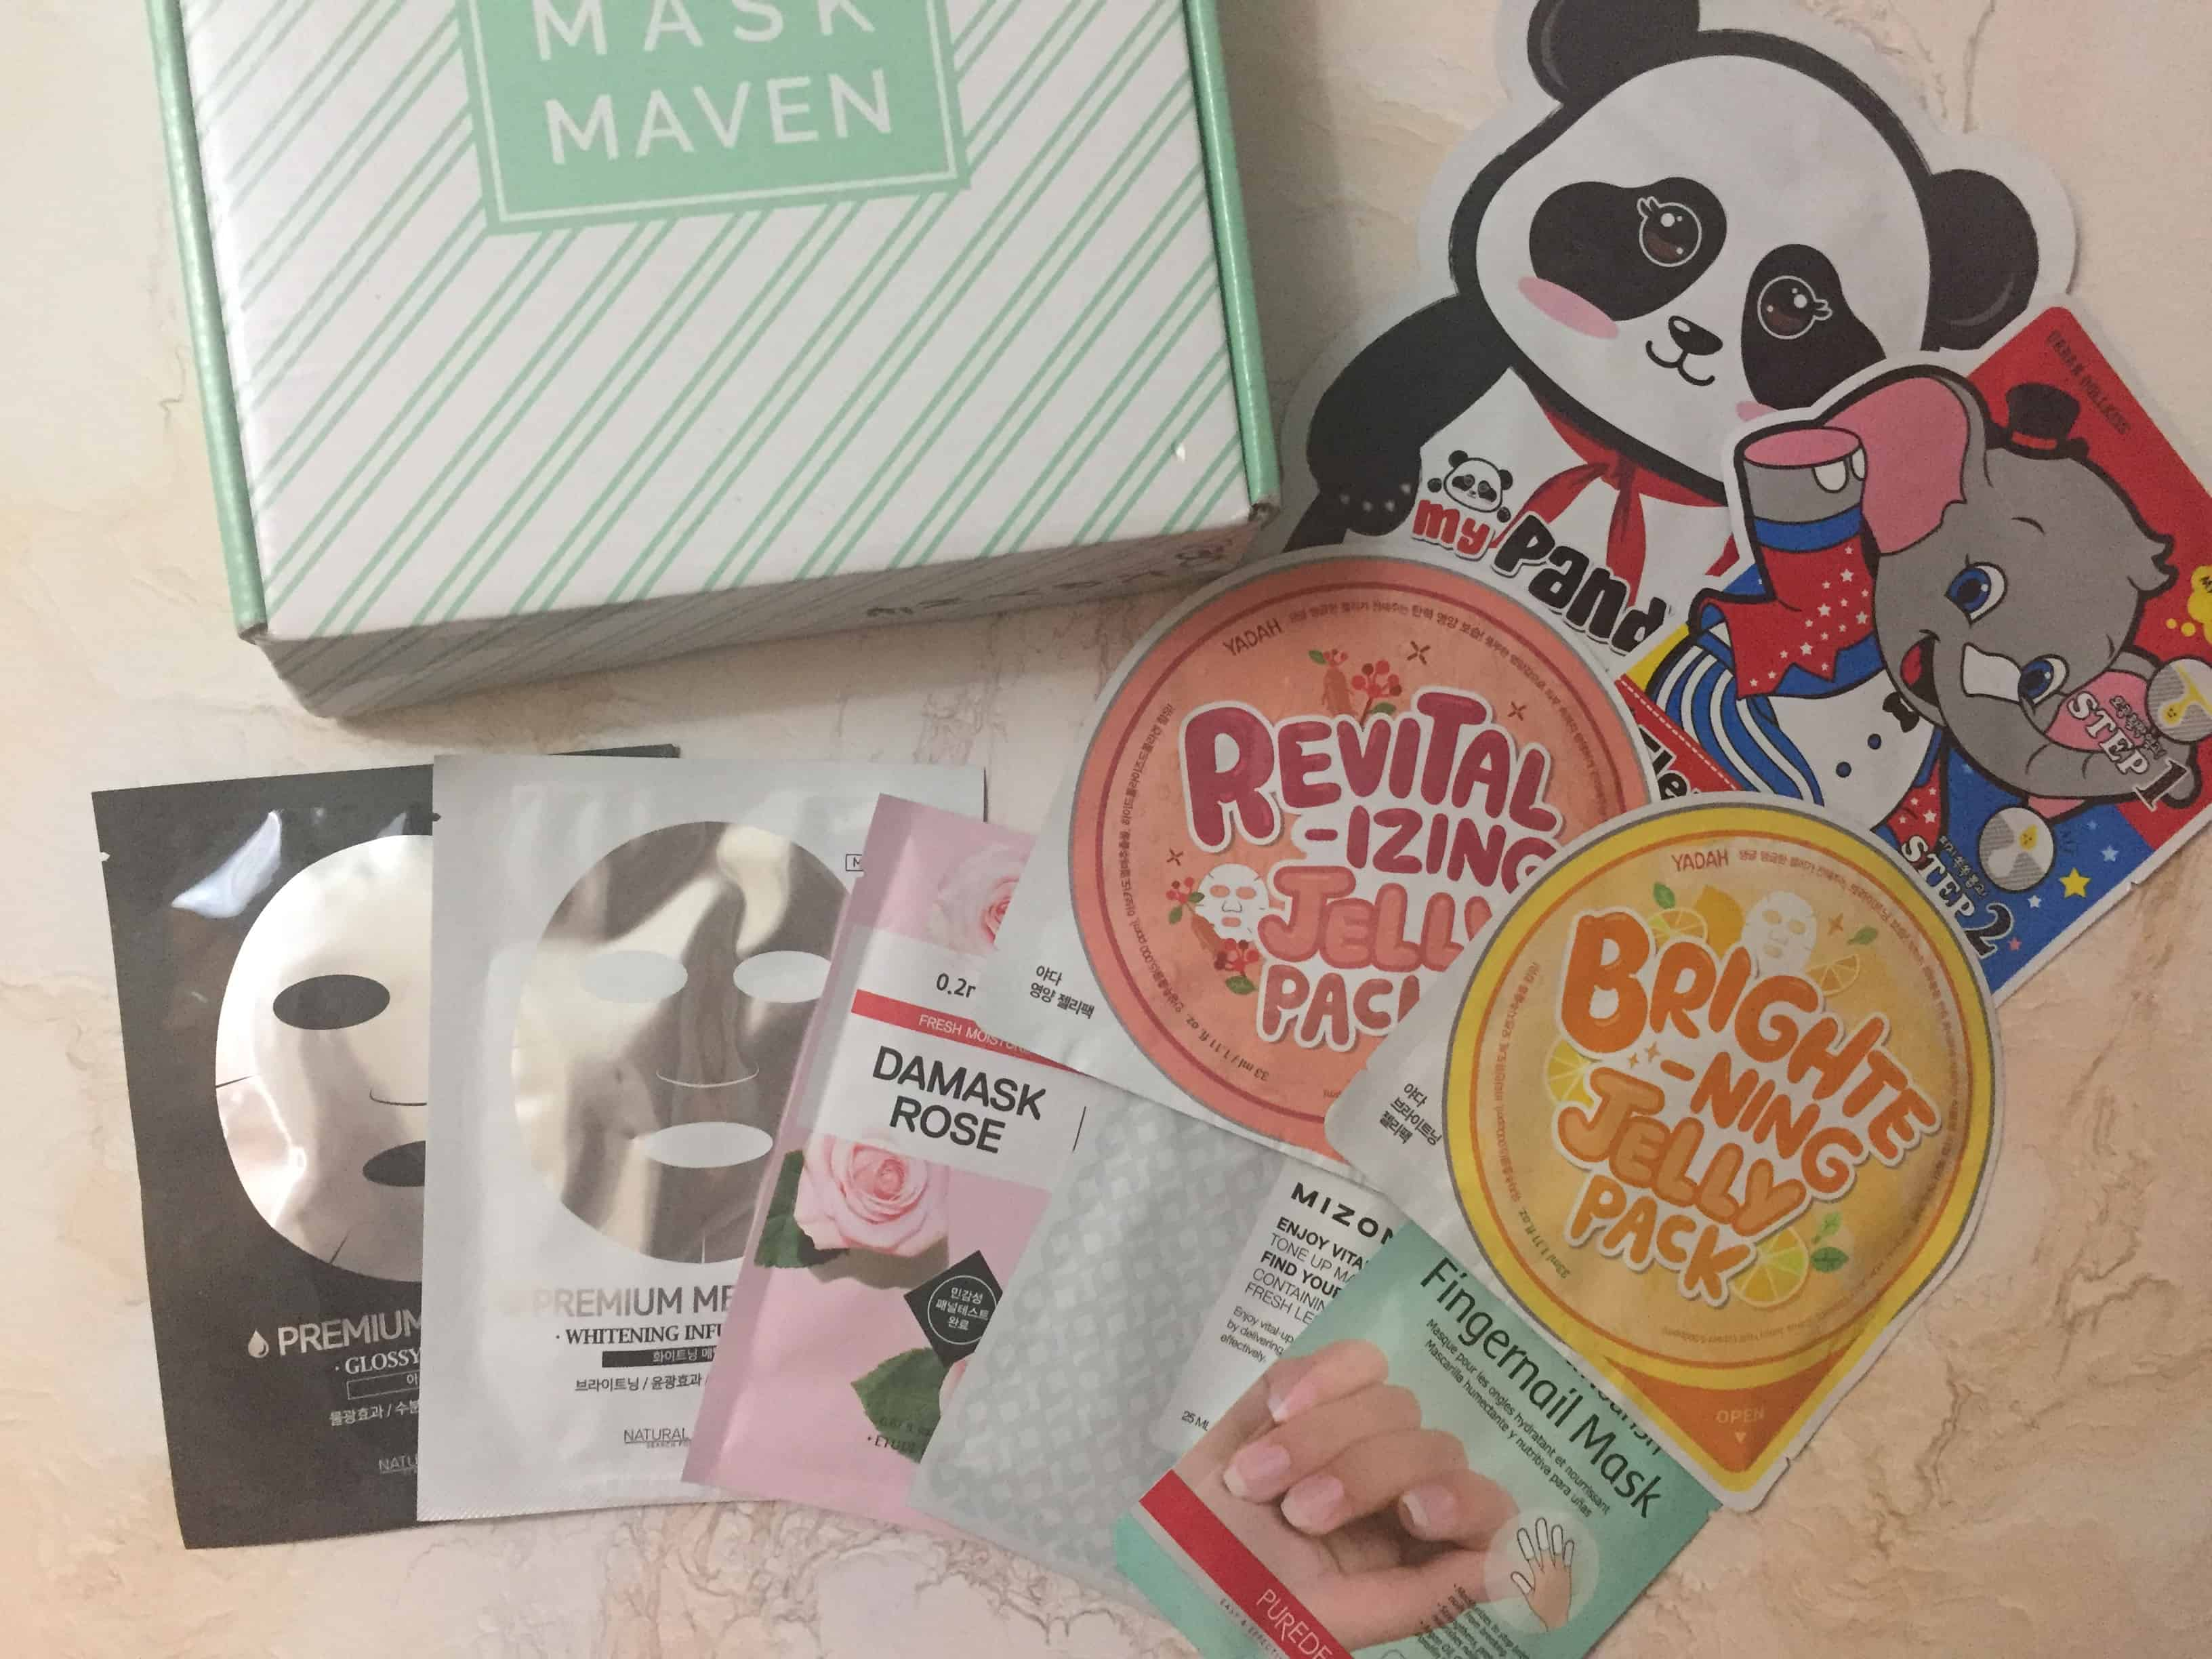 Beauteque Mask Maven March 2018 Subscription Box Review + Coupon